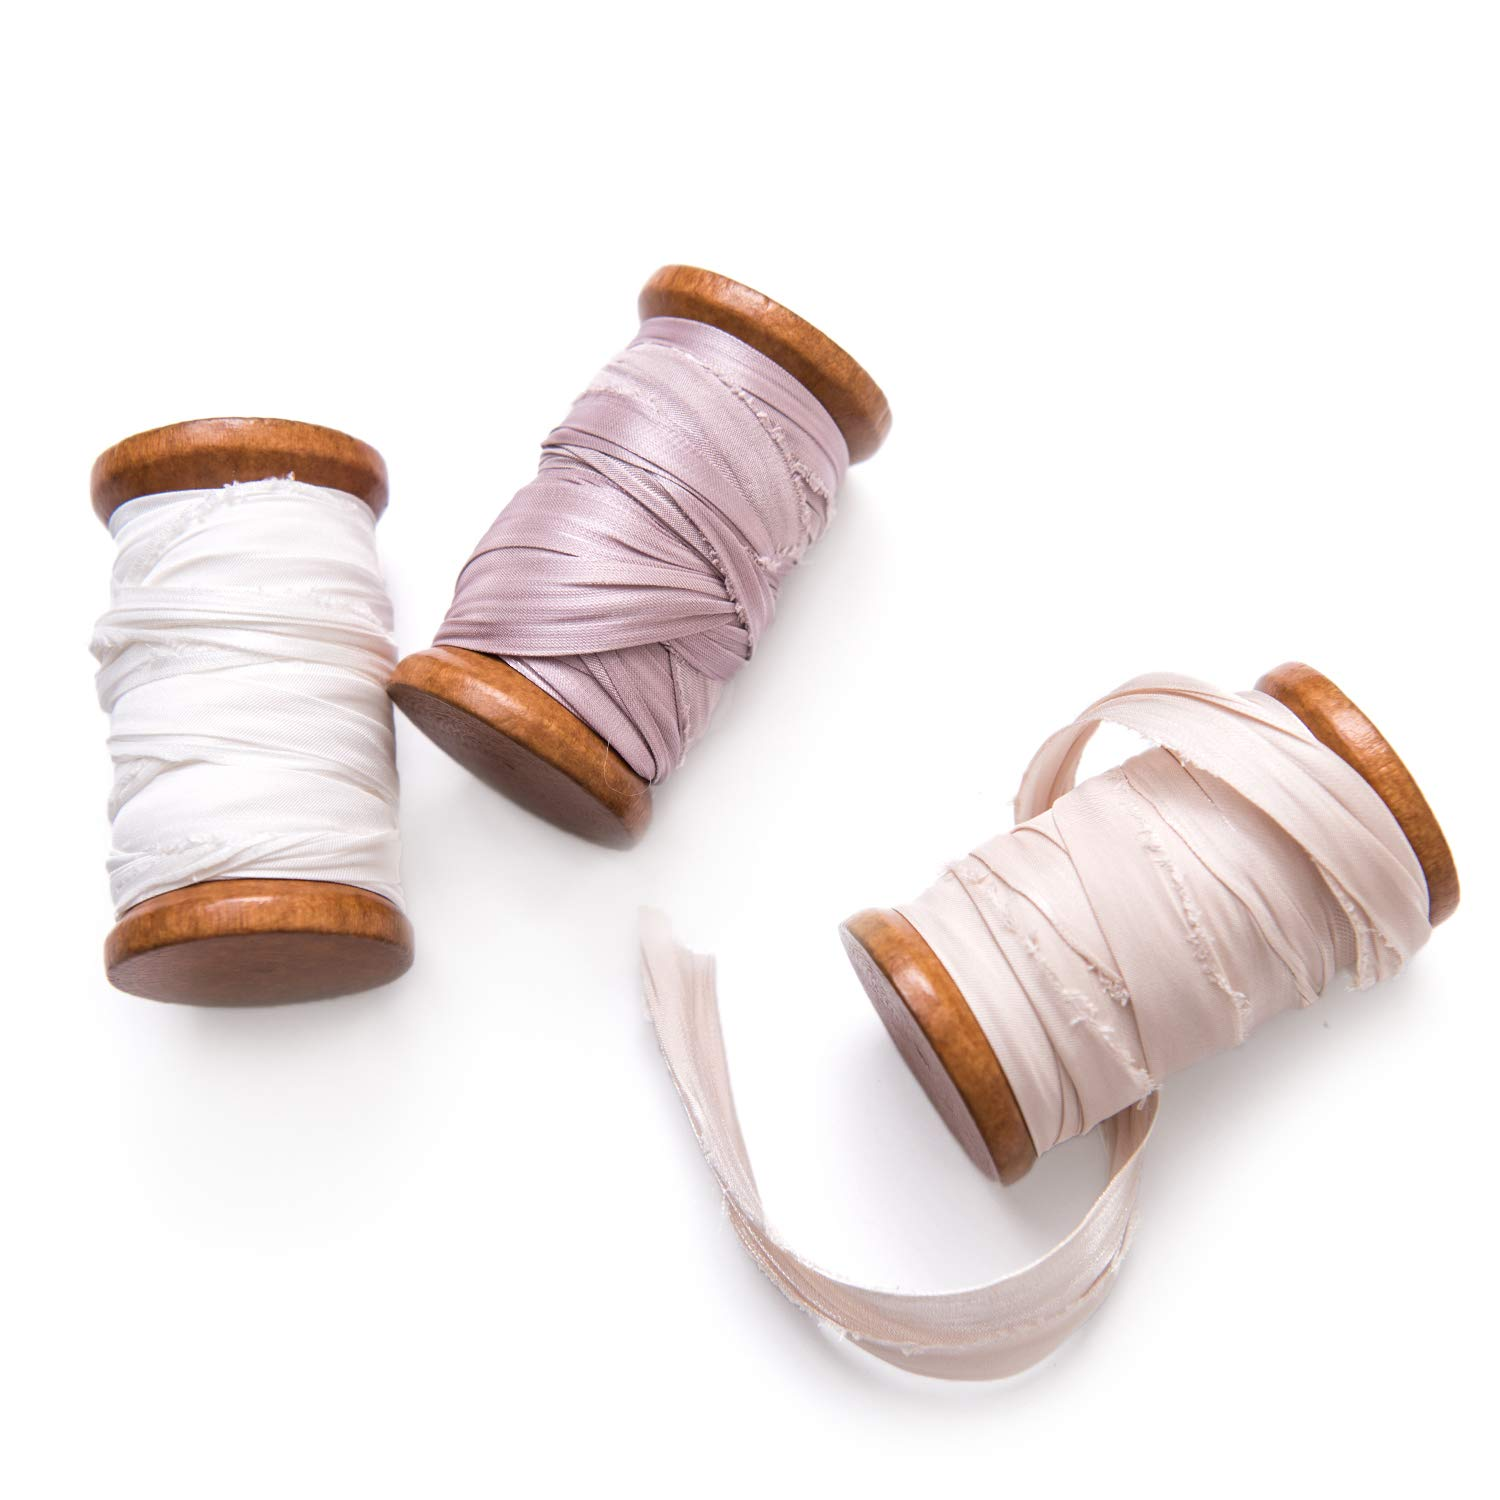 Ling's moment Handmade Raw Edge Sari Silk Ribbon with Spool Set of 3 Rolls Champagne/Light Mauve/White for Wedding Bouquets Invitations Flat Lay Photography Decor by Ling's moment